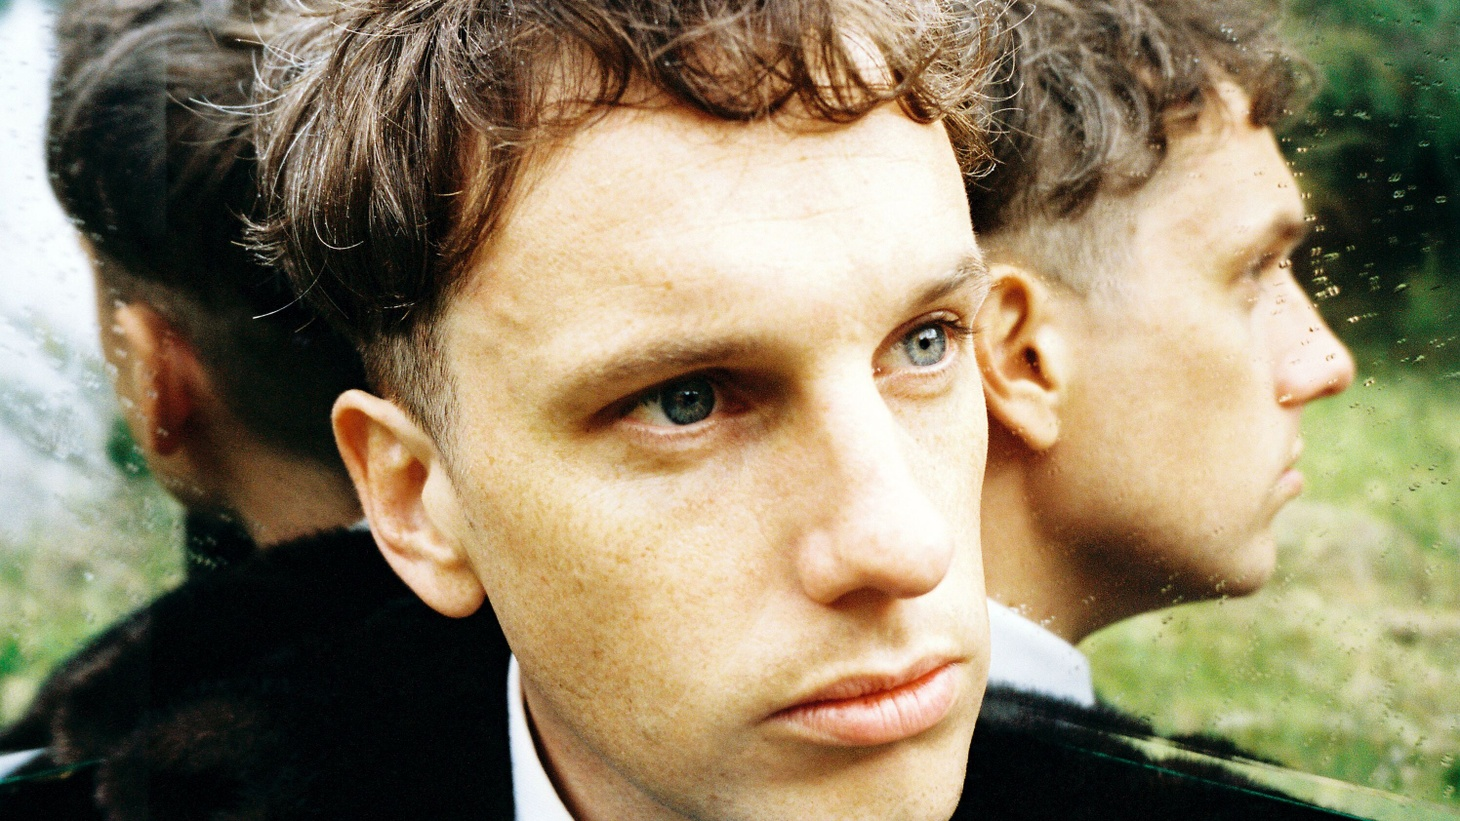 Jake Webb took his parent's musical influences - doo-wop, the Everly Brothers and the Beatles - and created Methyl Ethel. Written, produced and performed entirely by Webb, his third album Triage highlights a number of personal themes.